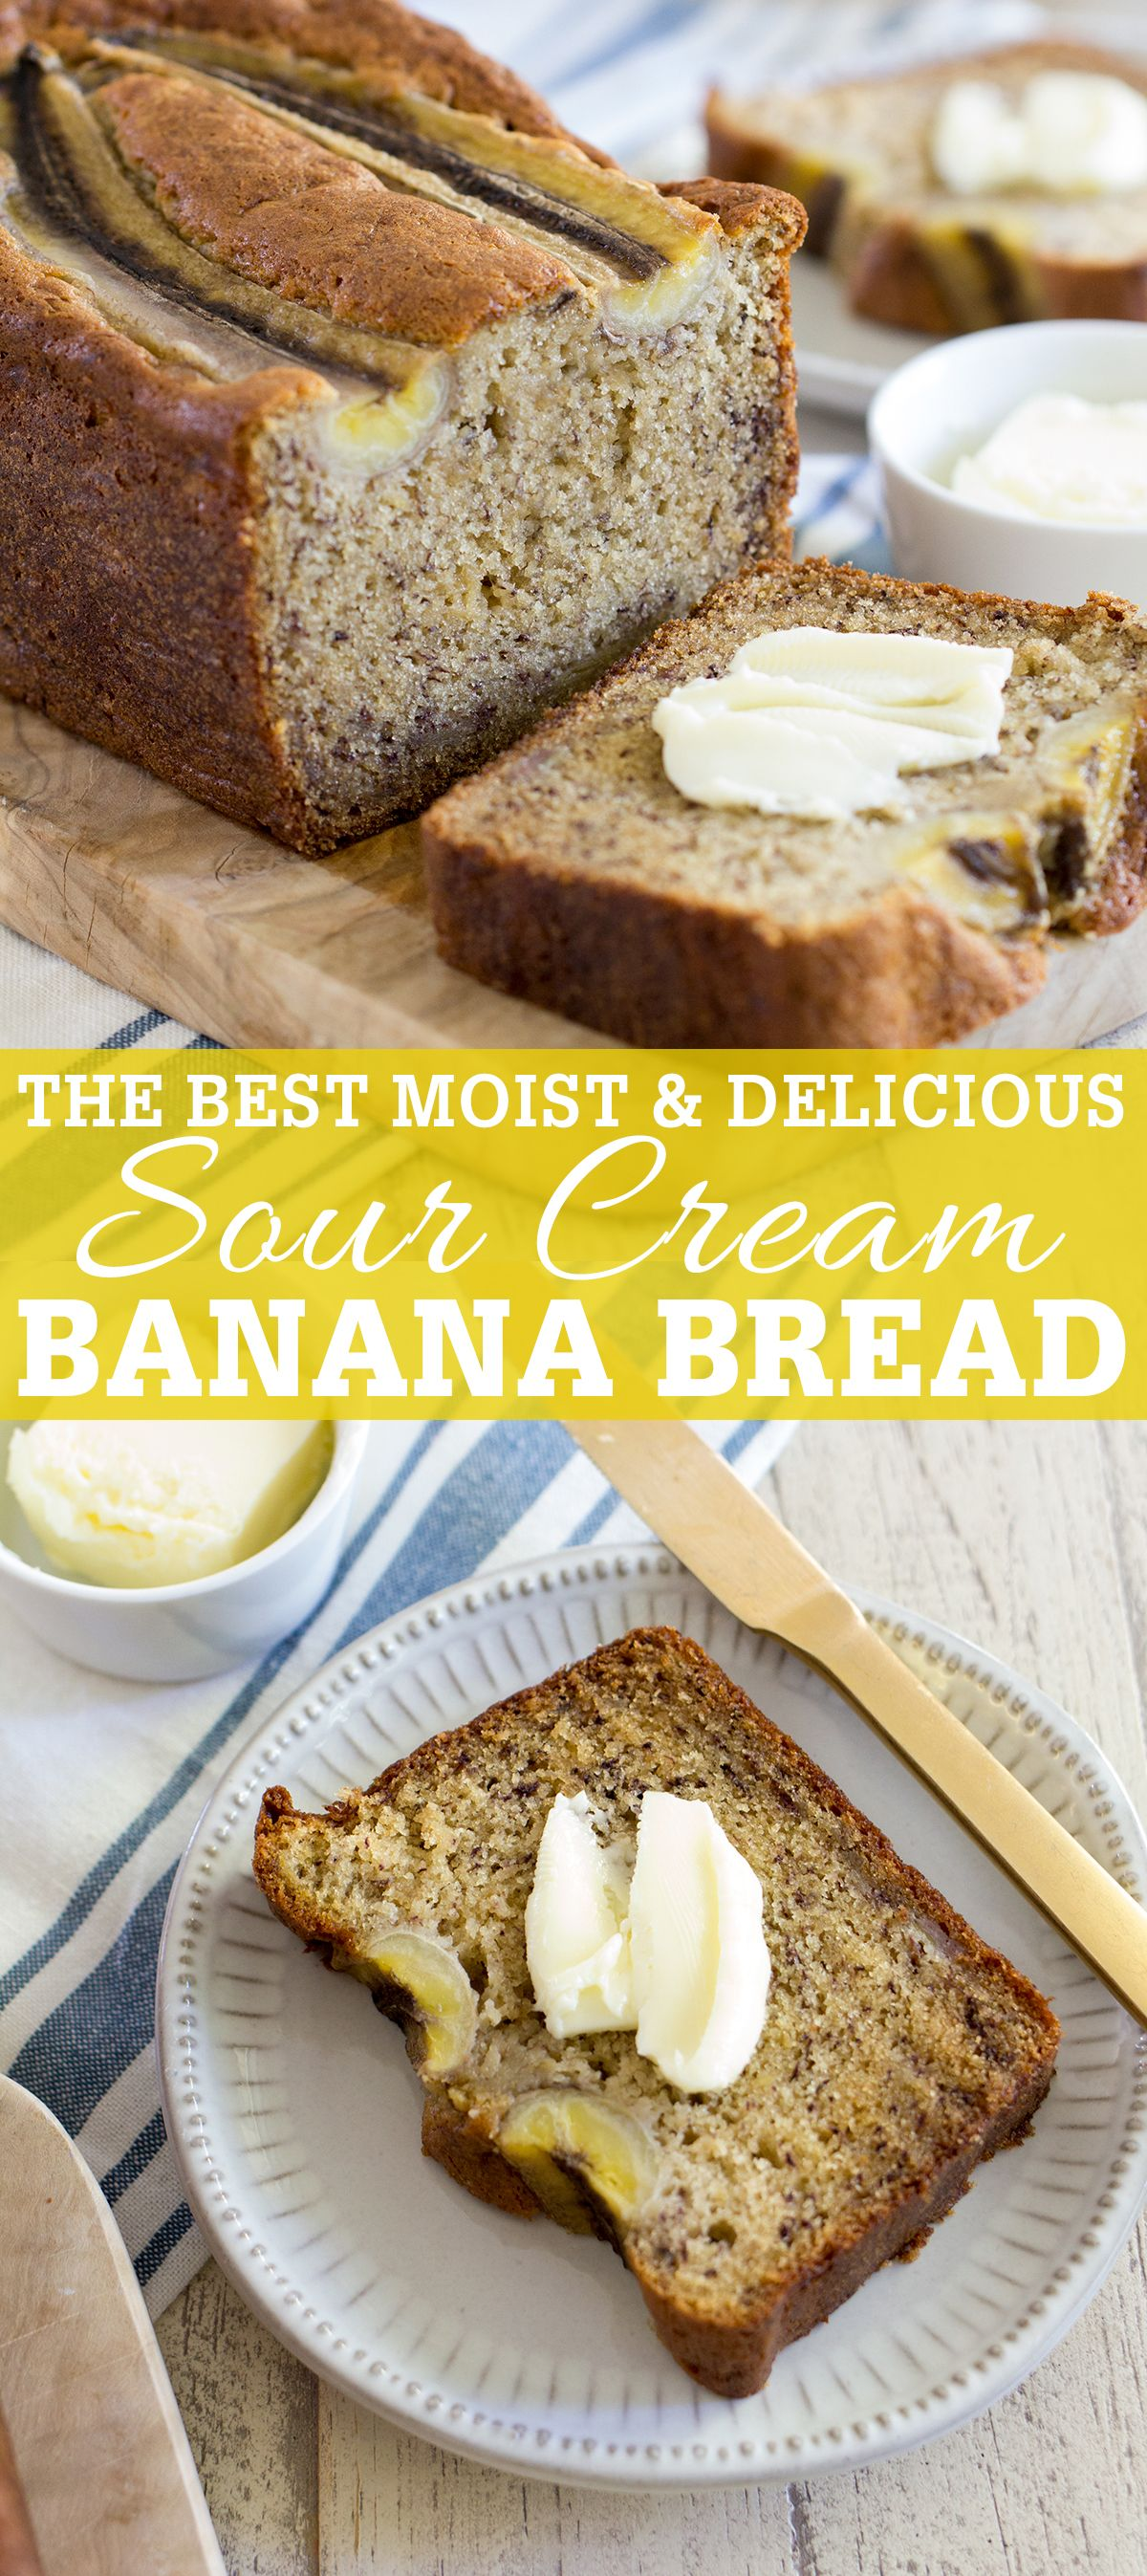 This Recipe Is For The Very Best Sour Cream Banana Bread That Is Very Moist Flavorful And In 2020 Sour Cream Banana Bread Banana Bread Recipe Moist Best Banana Bread